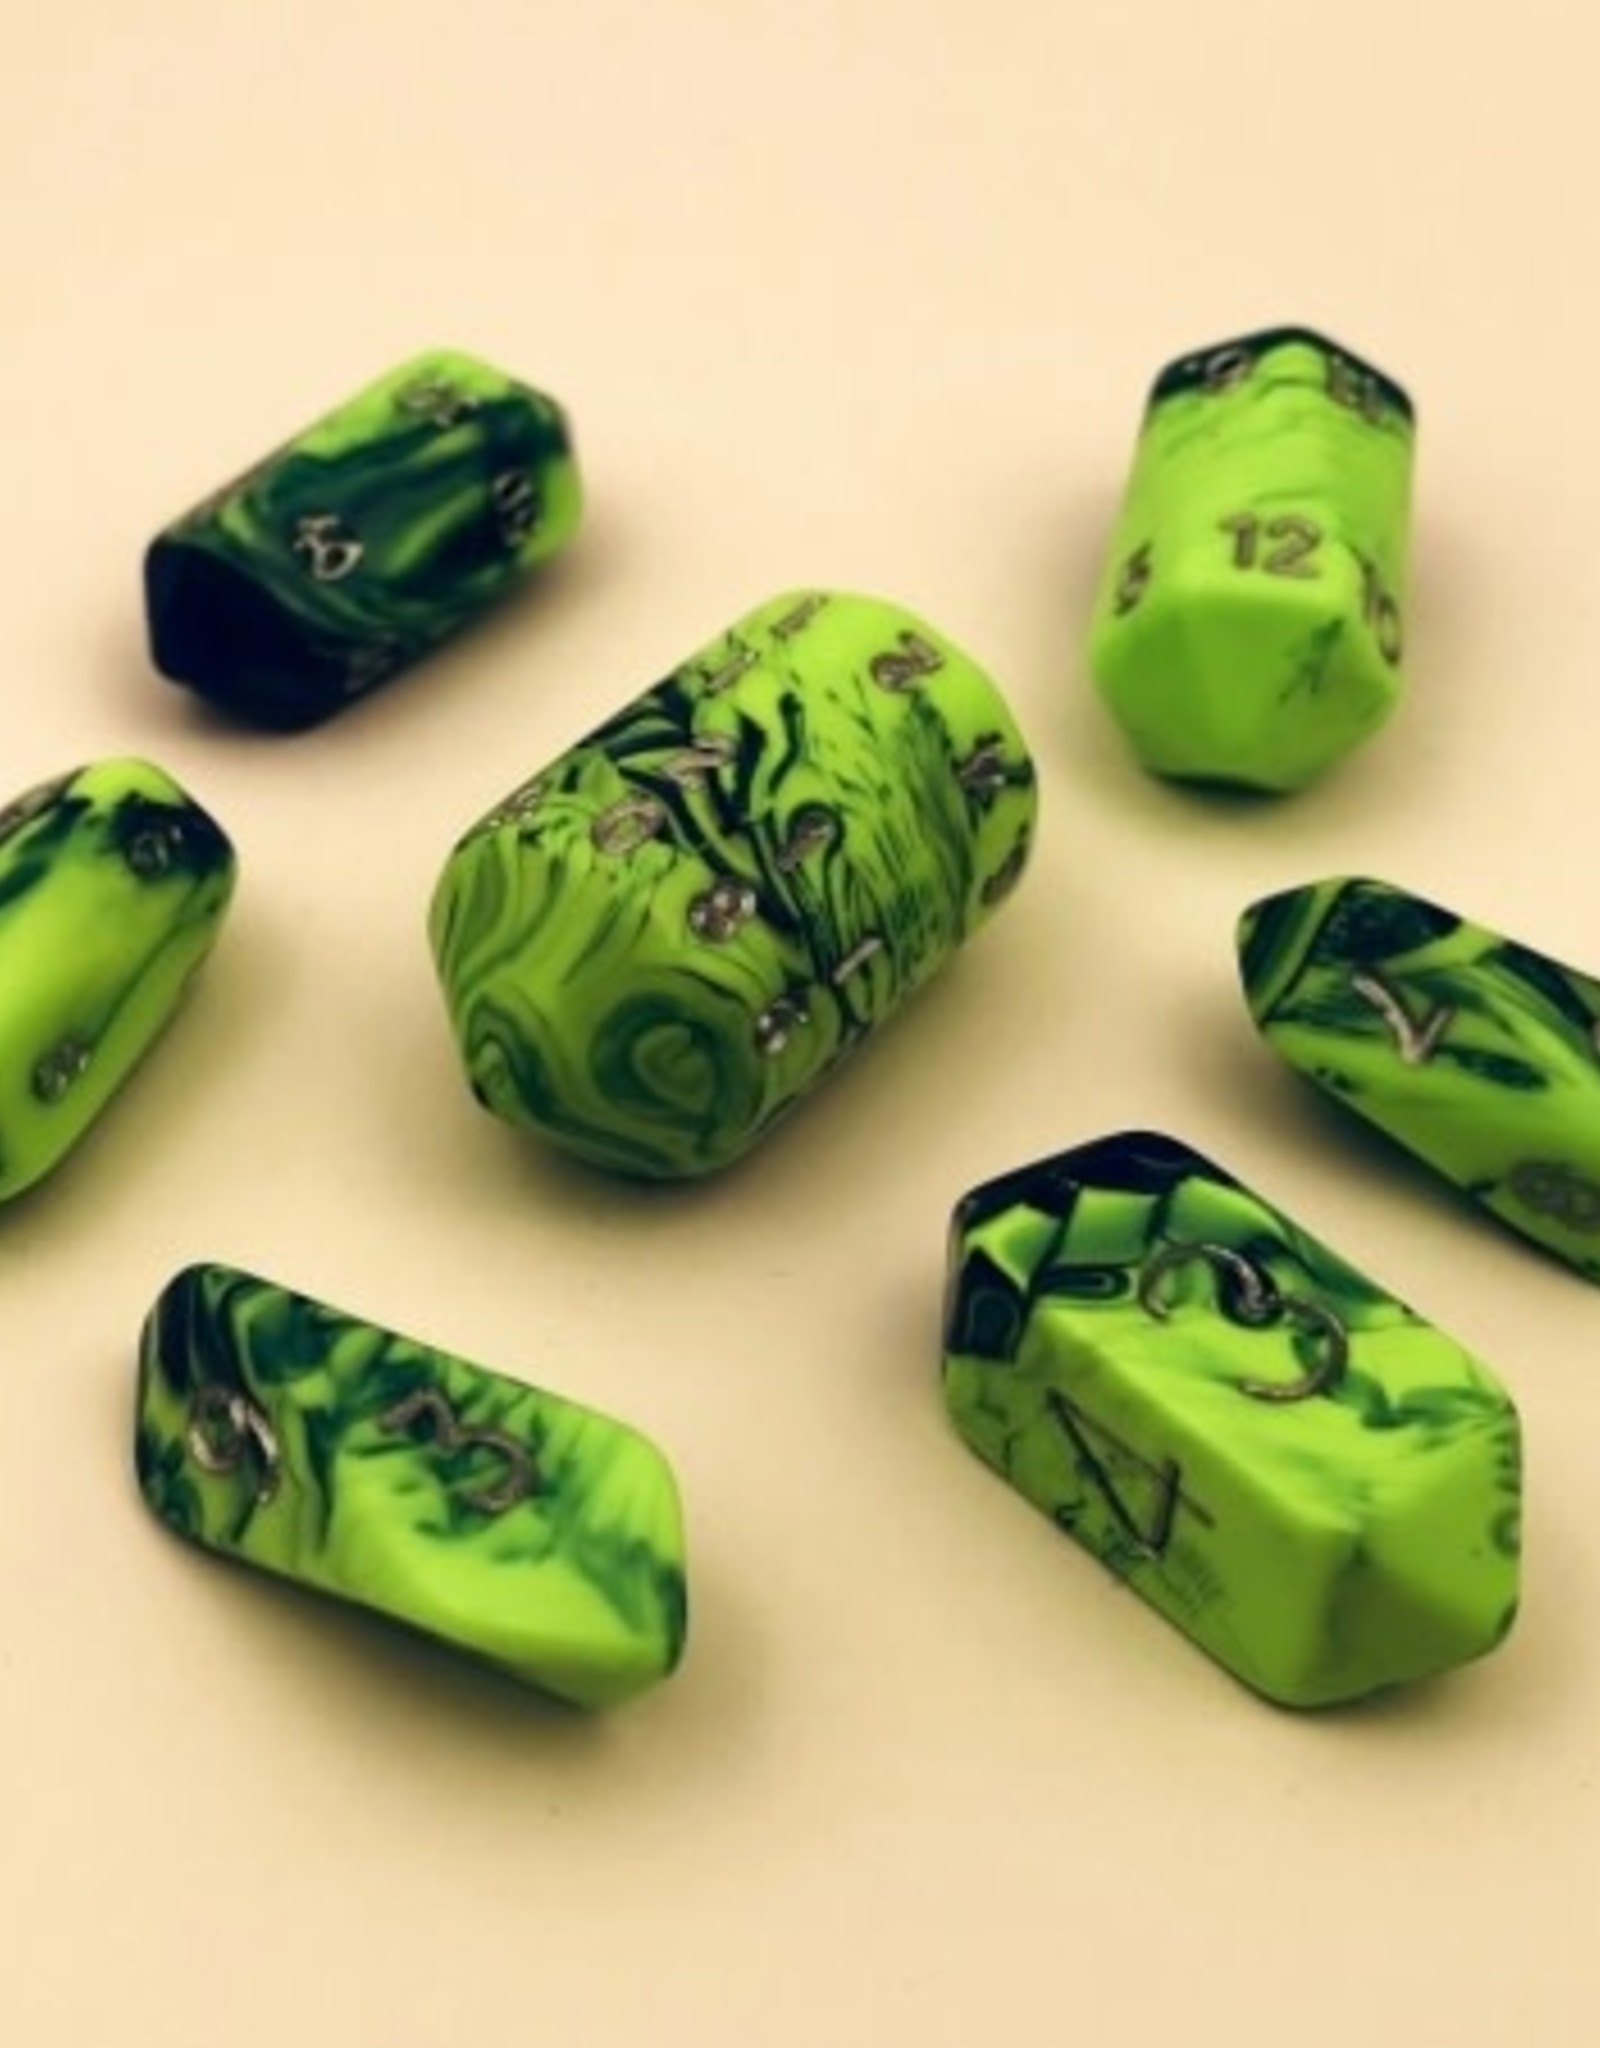 Crystal Caste Spindle Poly 7 set: Toxic Green & Blue